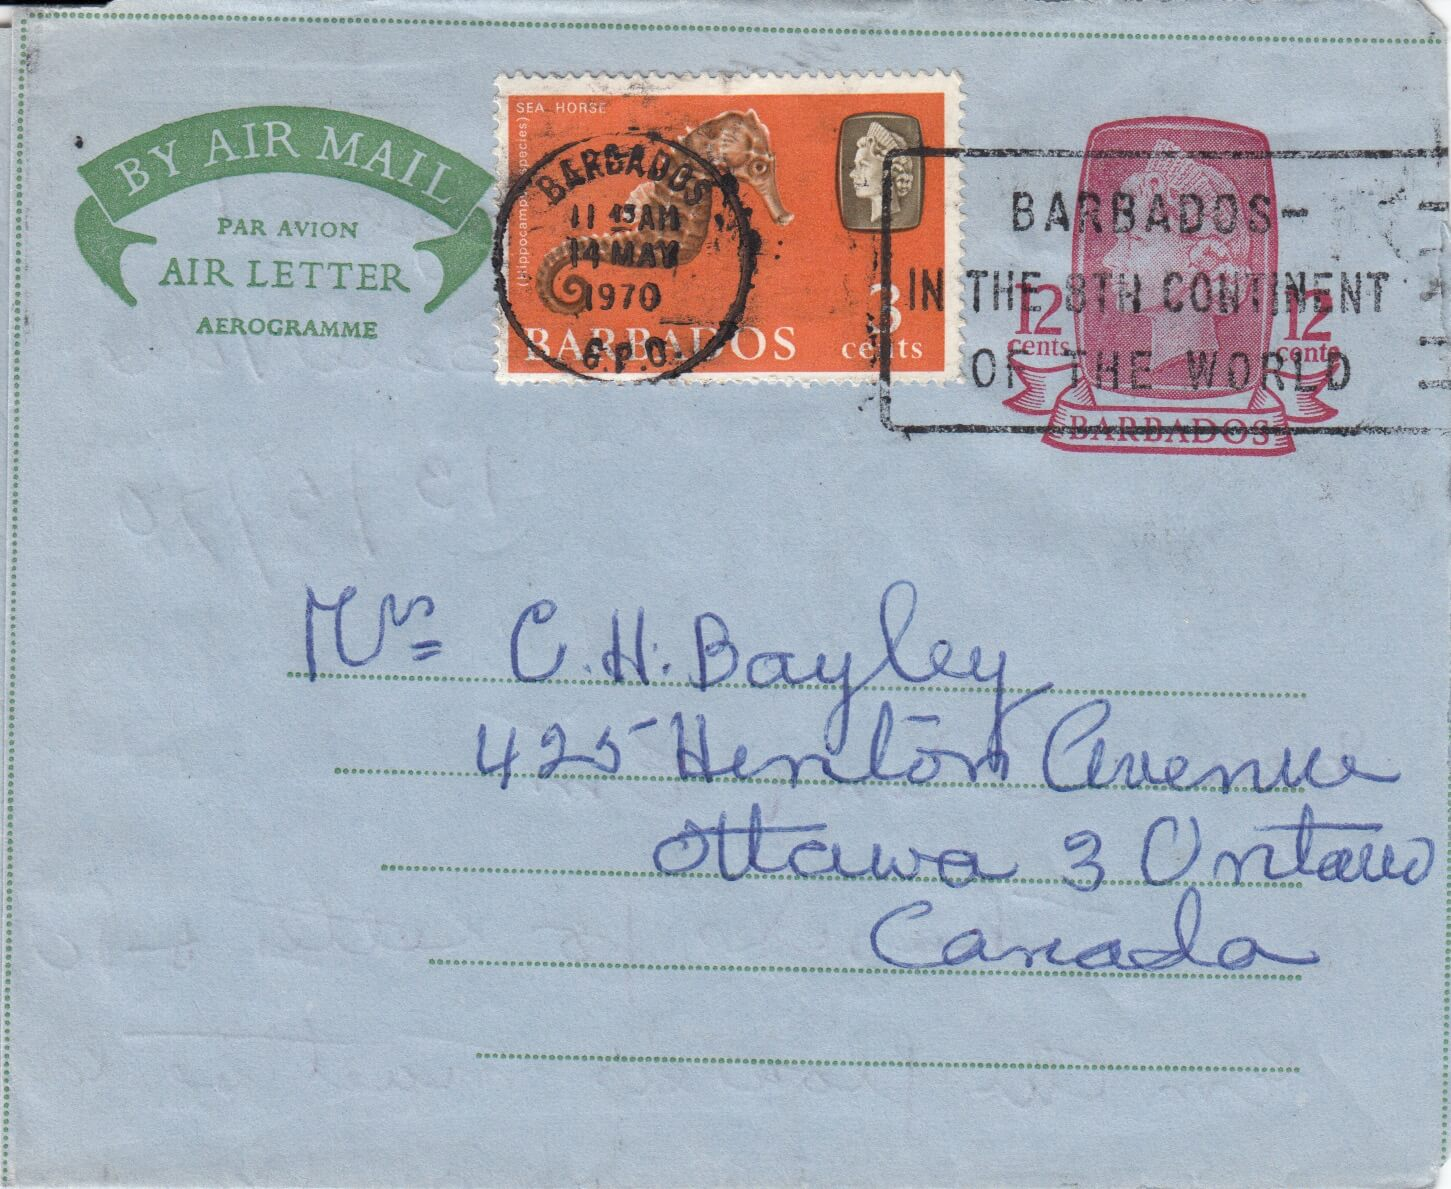 It pays to study the postmarks on Barbados stamps and covers